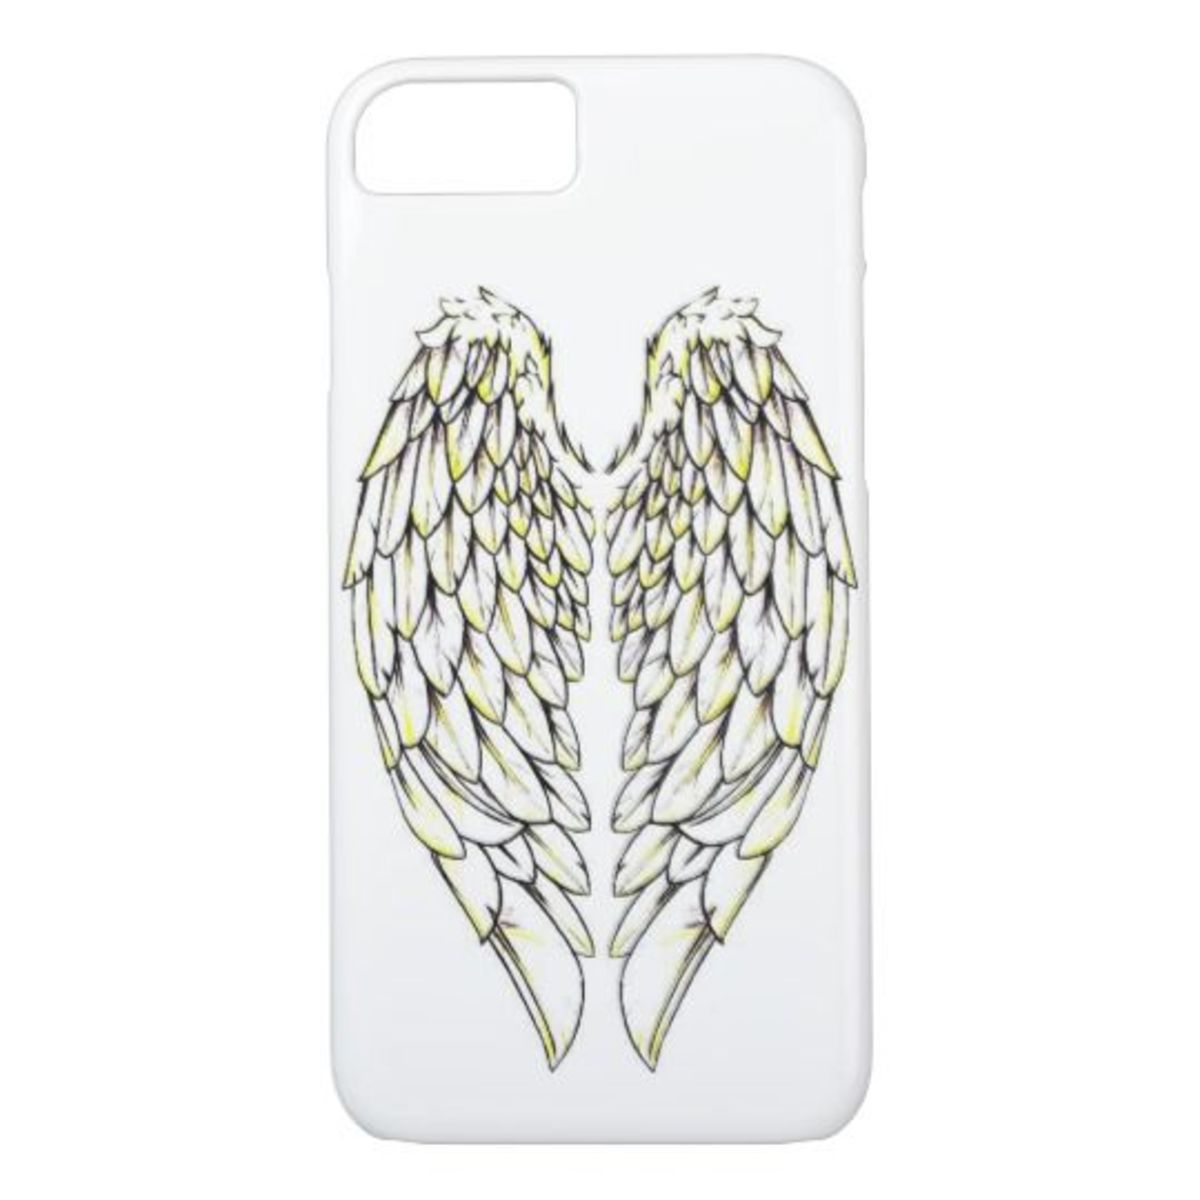 Angel wings decorate this phone case